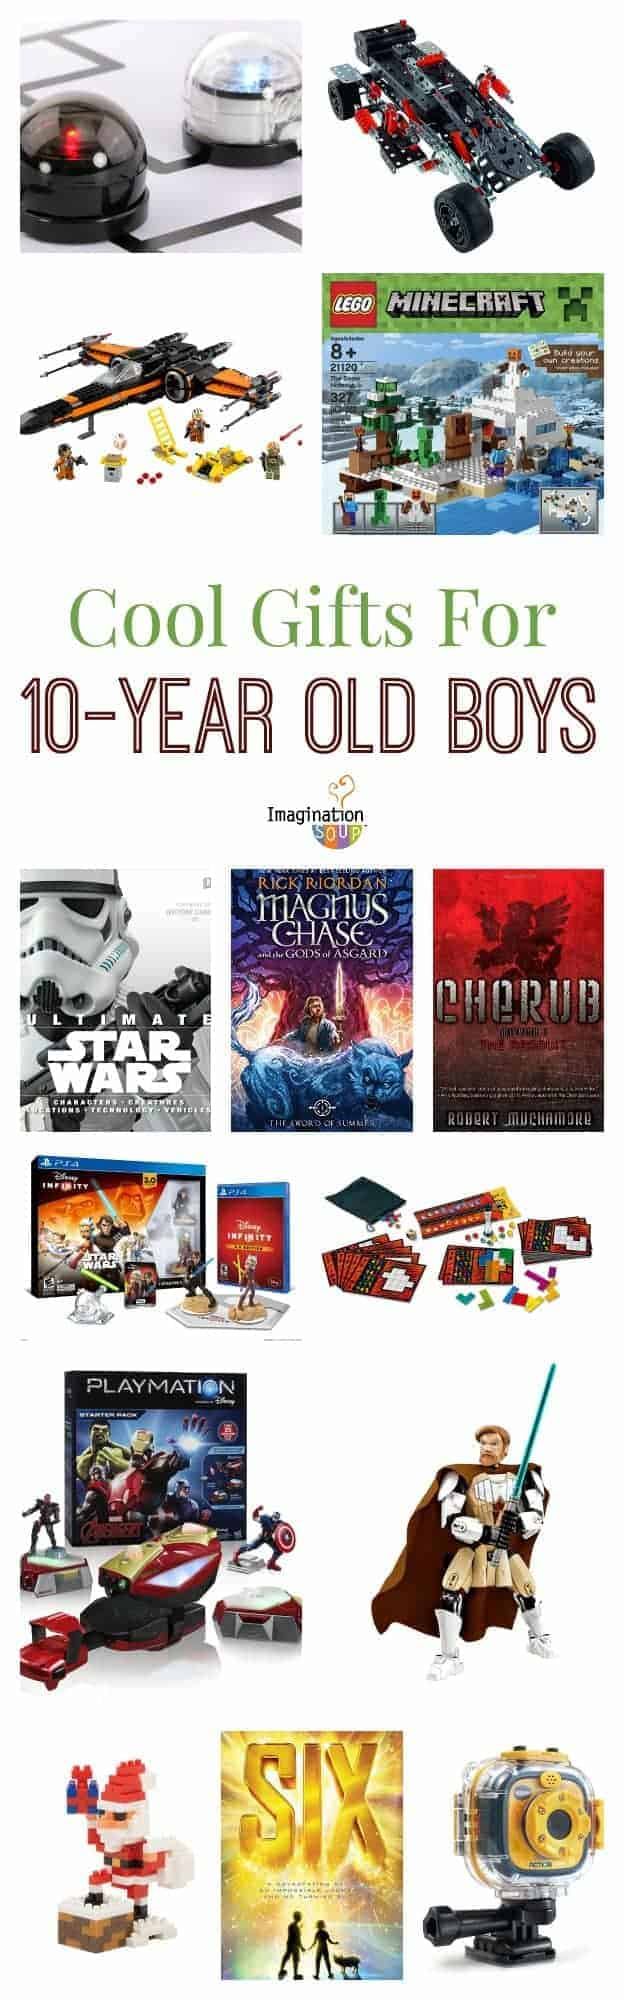 Ten year old boy christmas gift ideas